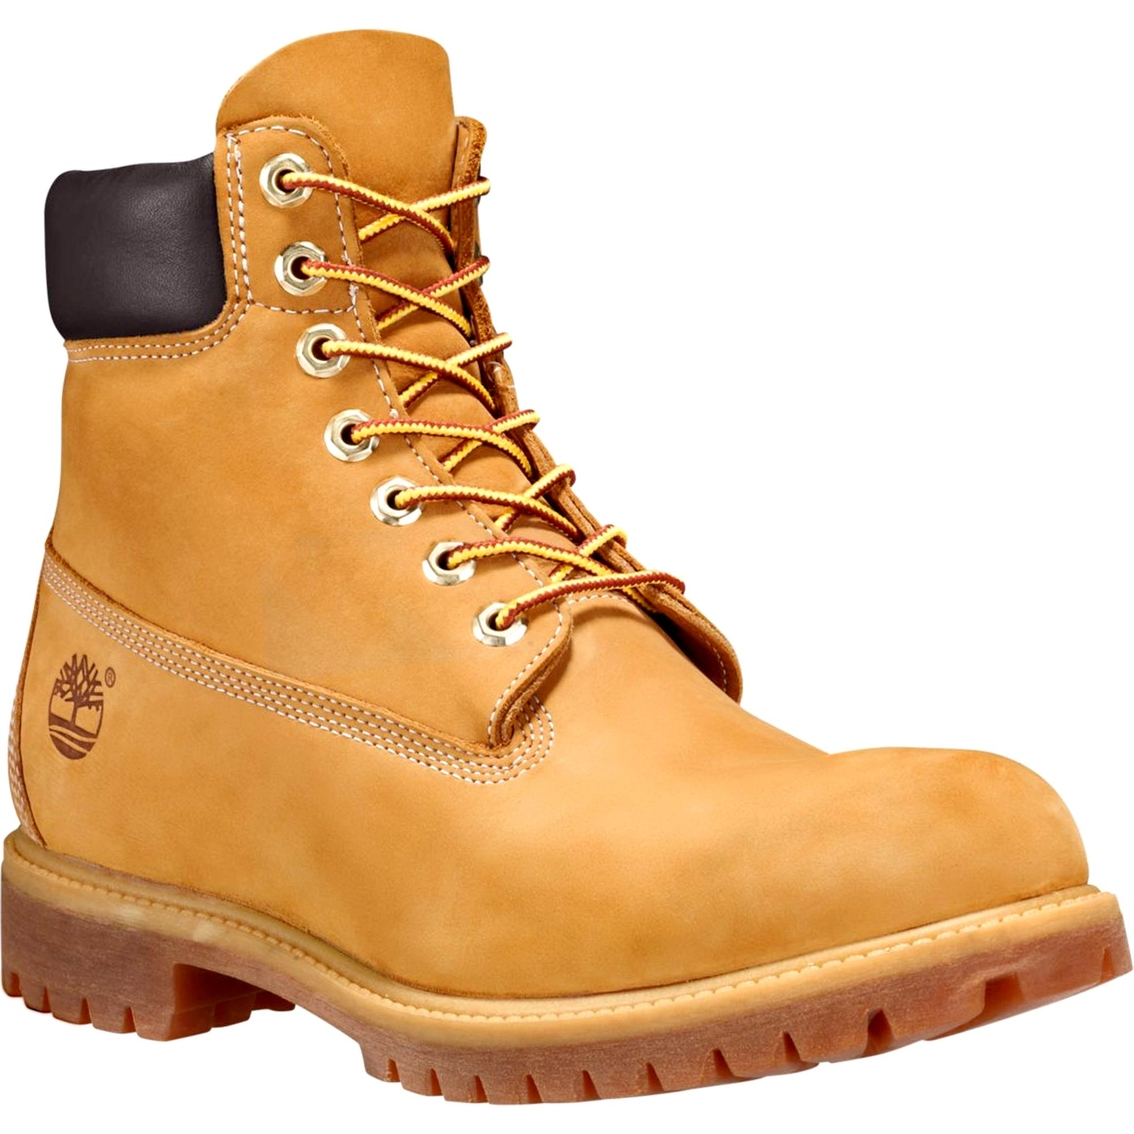 Wheat Boots | Casual | Shoes